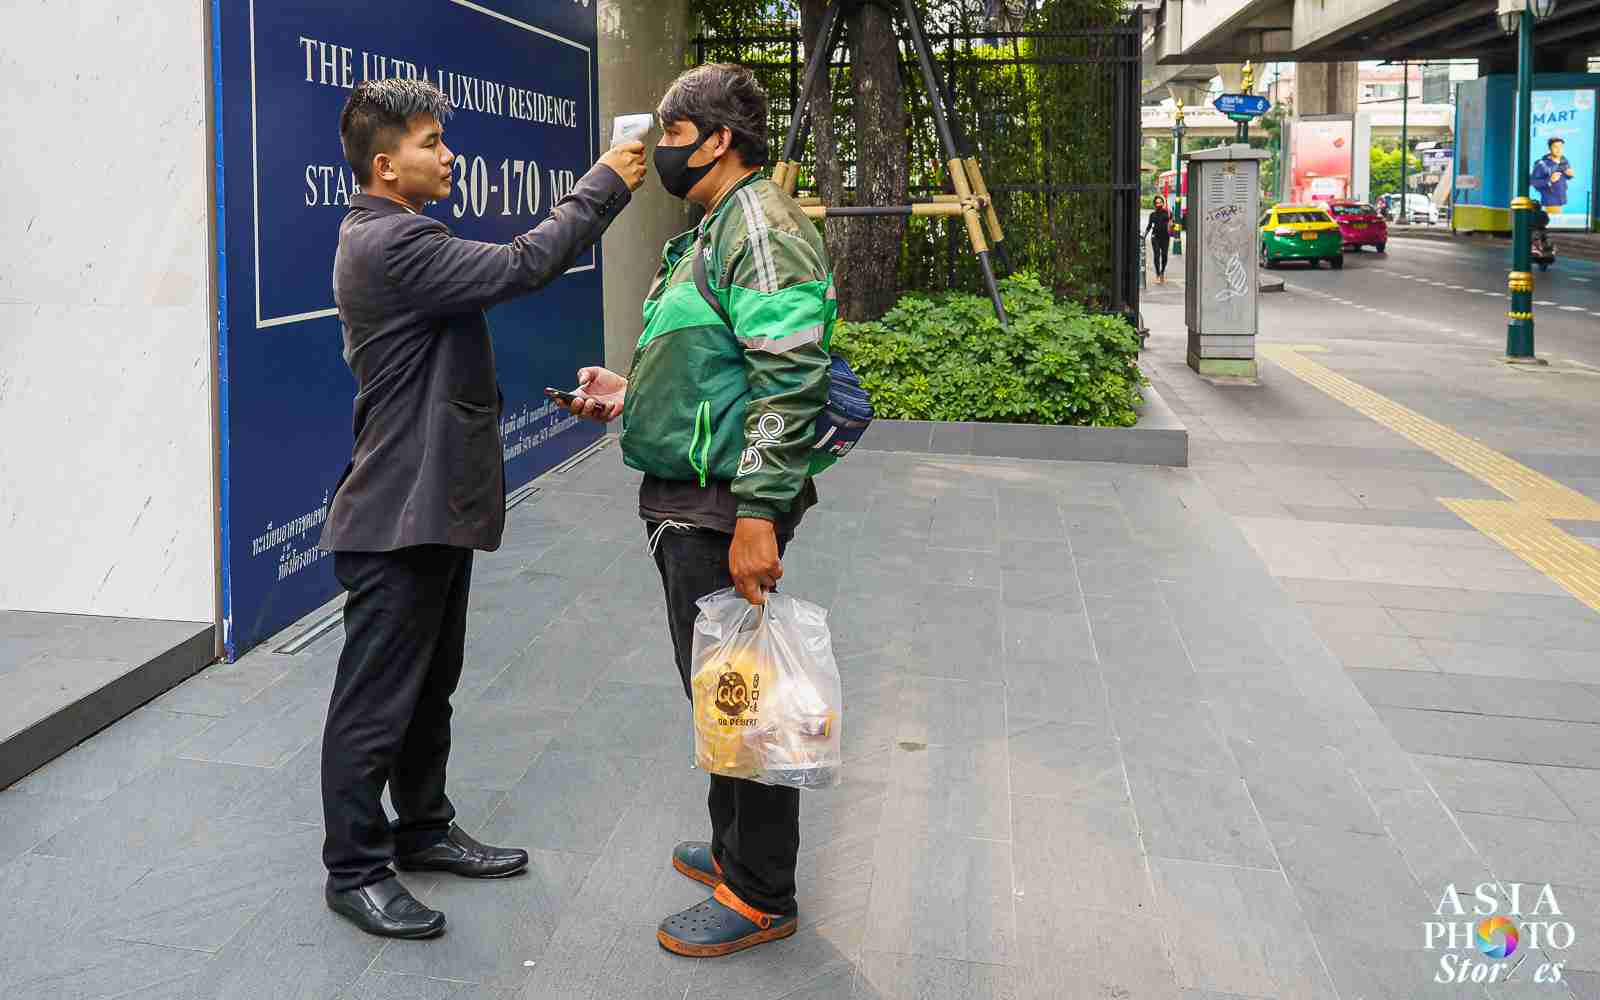 Bangkok, Thailand (April 14, 2020): A condomium security guard checks a food-delivery driver for a fever amid the Covid-19 pandemic.